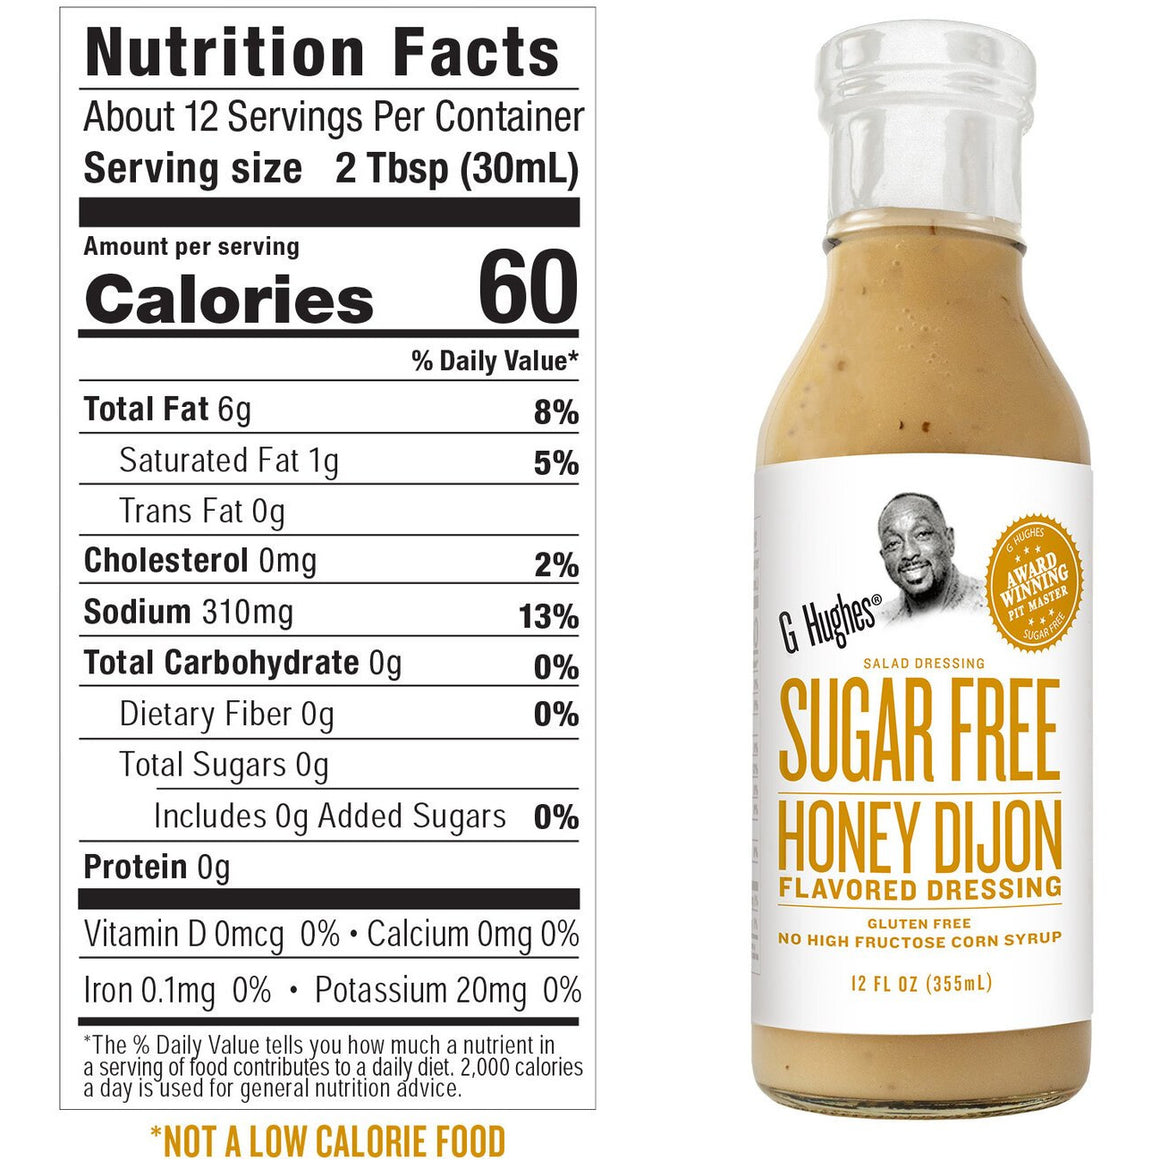 G Hughes Salad Dressing - Sugar Free Honey Dijon - 12 oz